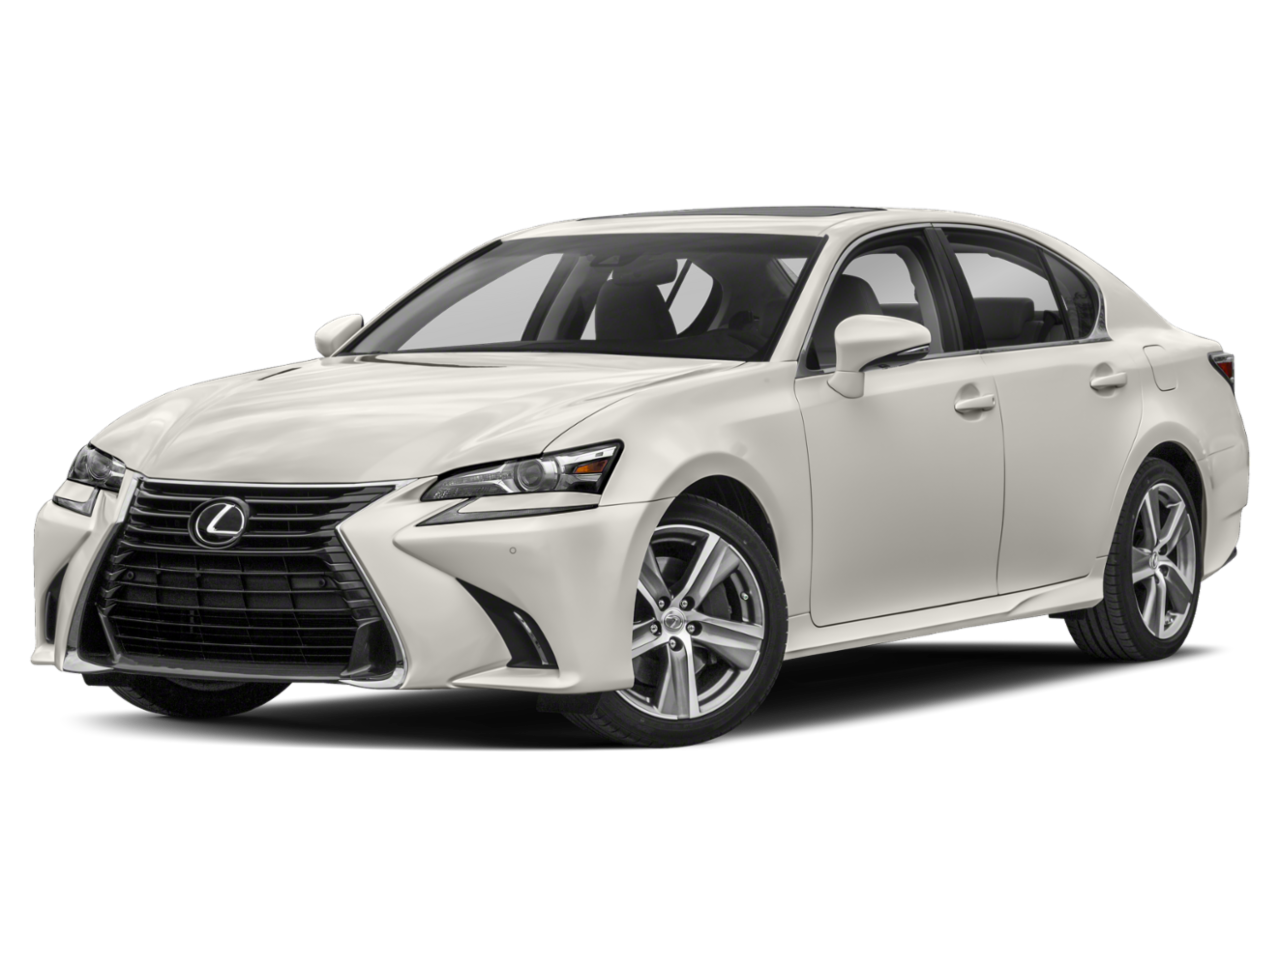 Buyer's Guide: 2020 Lexus GS